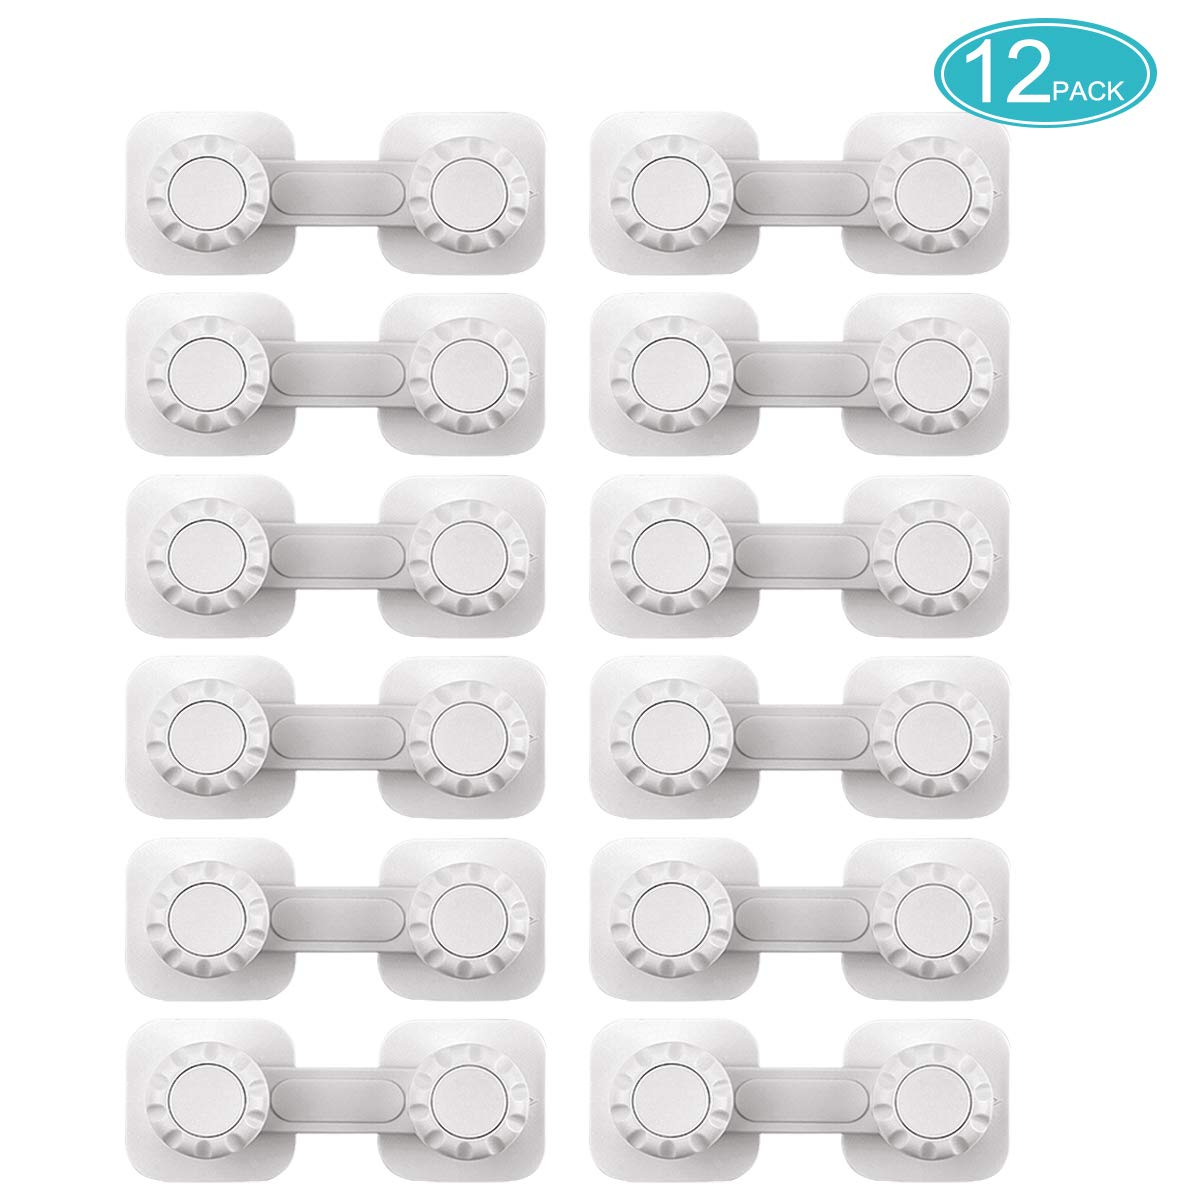 Baby Safety Locks, 12 Pack Child Proof Cabinet Locks for Cabinets, Doors, Drawers, Fridge, Oven | No Tools or Drilling Required